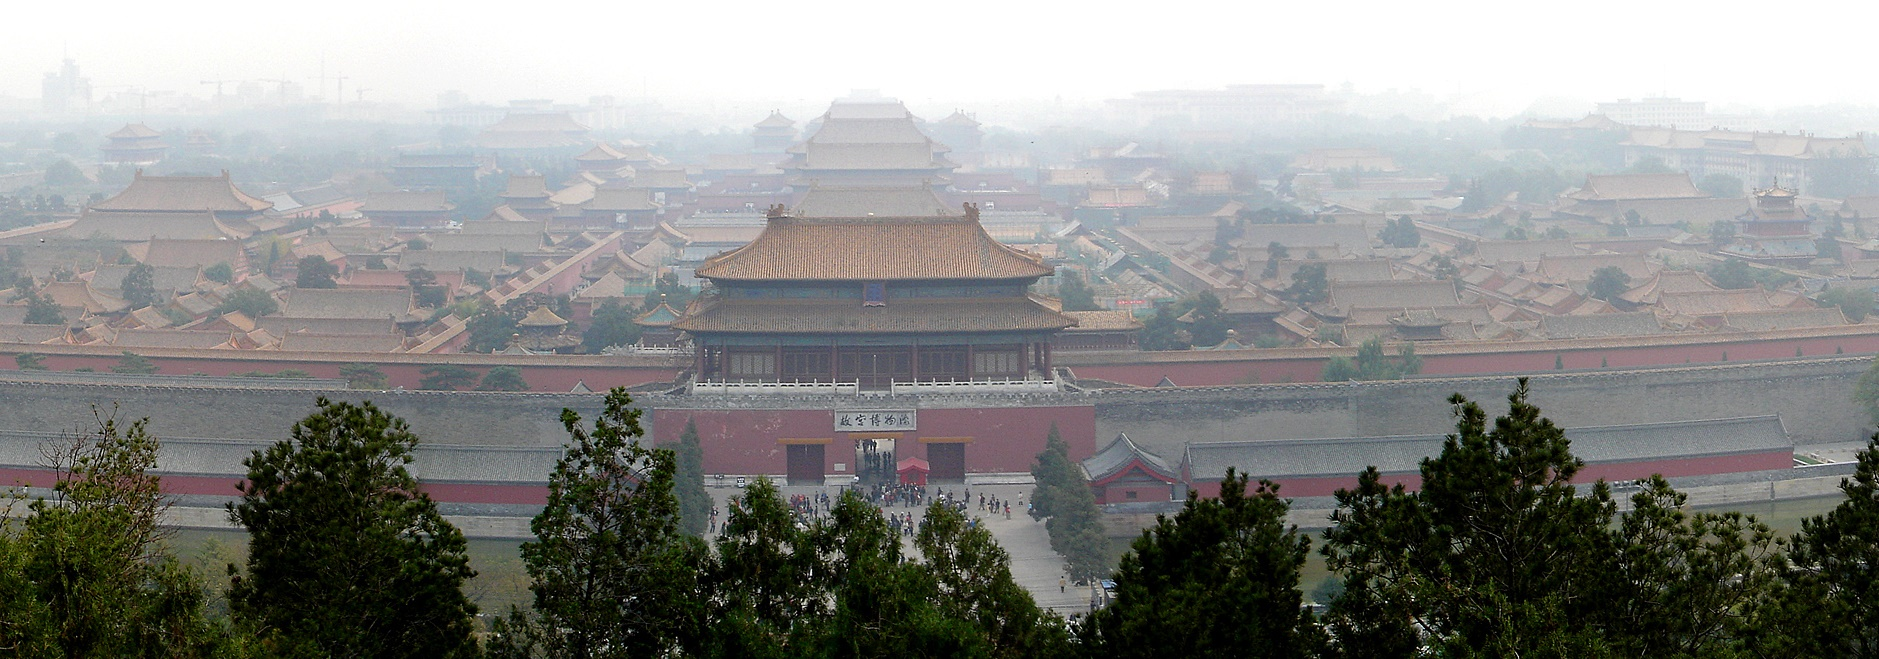 China-pollution_Jesse-Varner_cropped